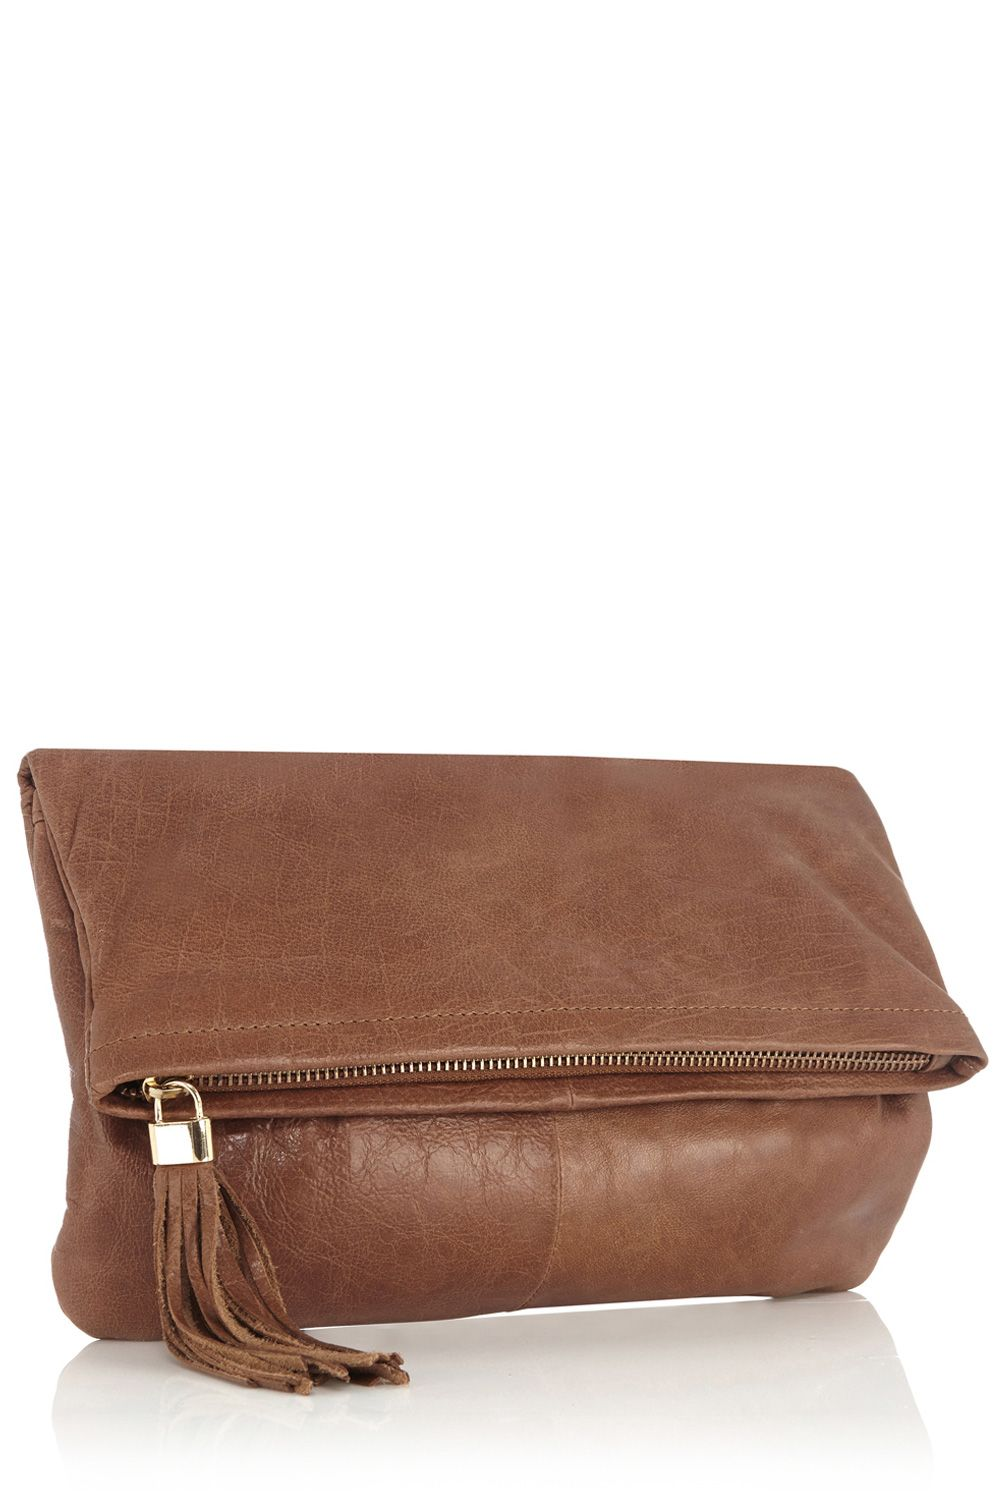 Clove leather clutch across body bag